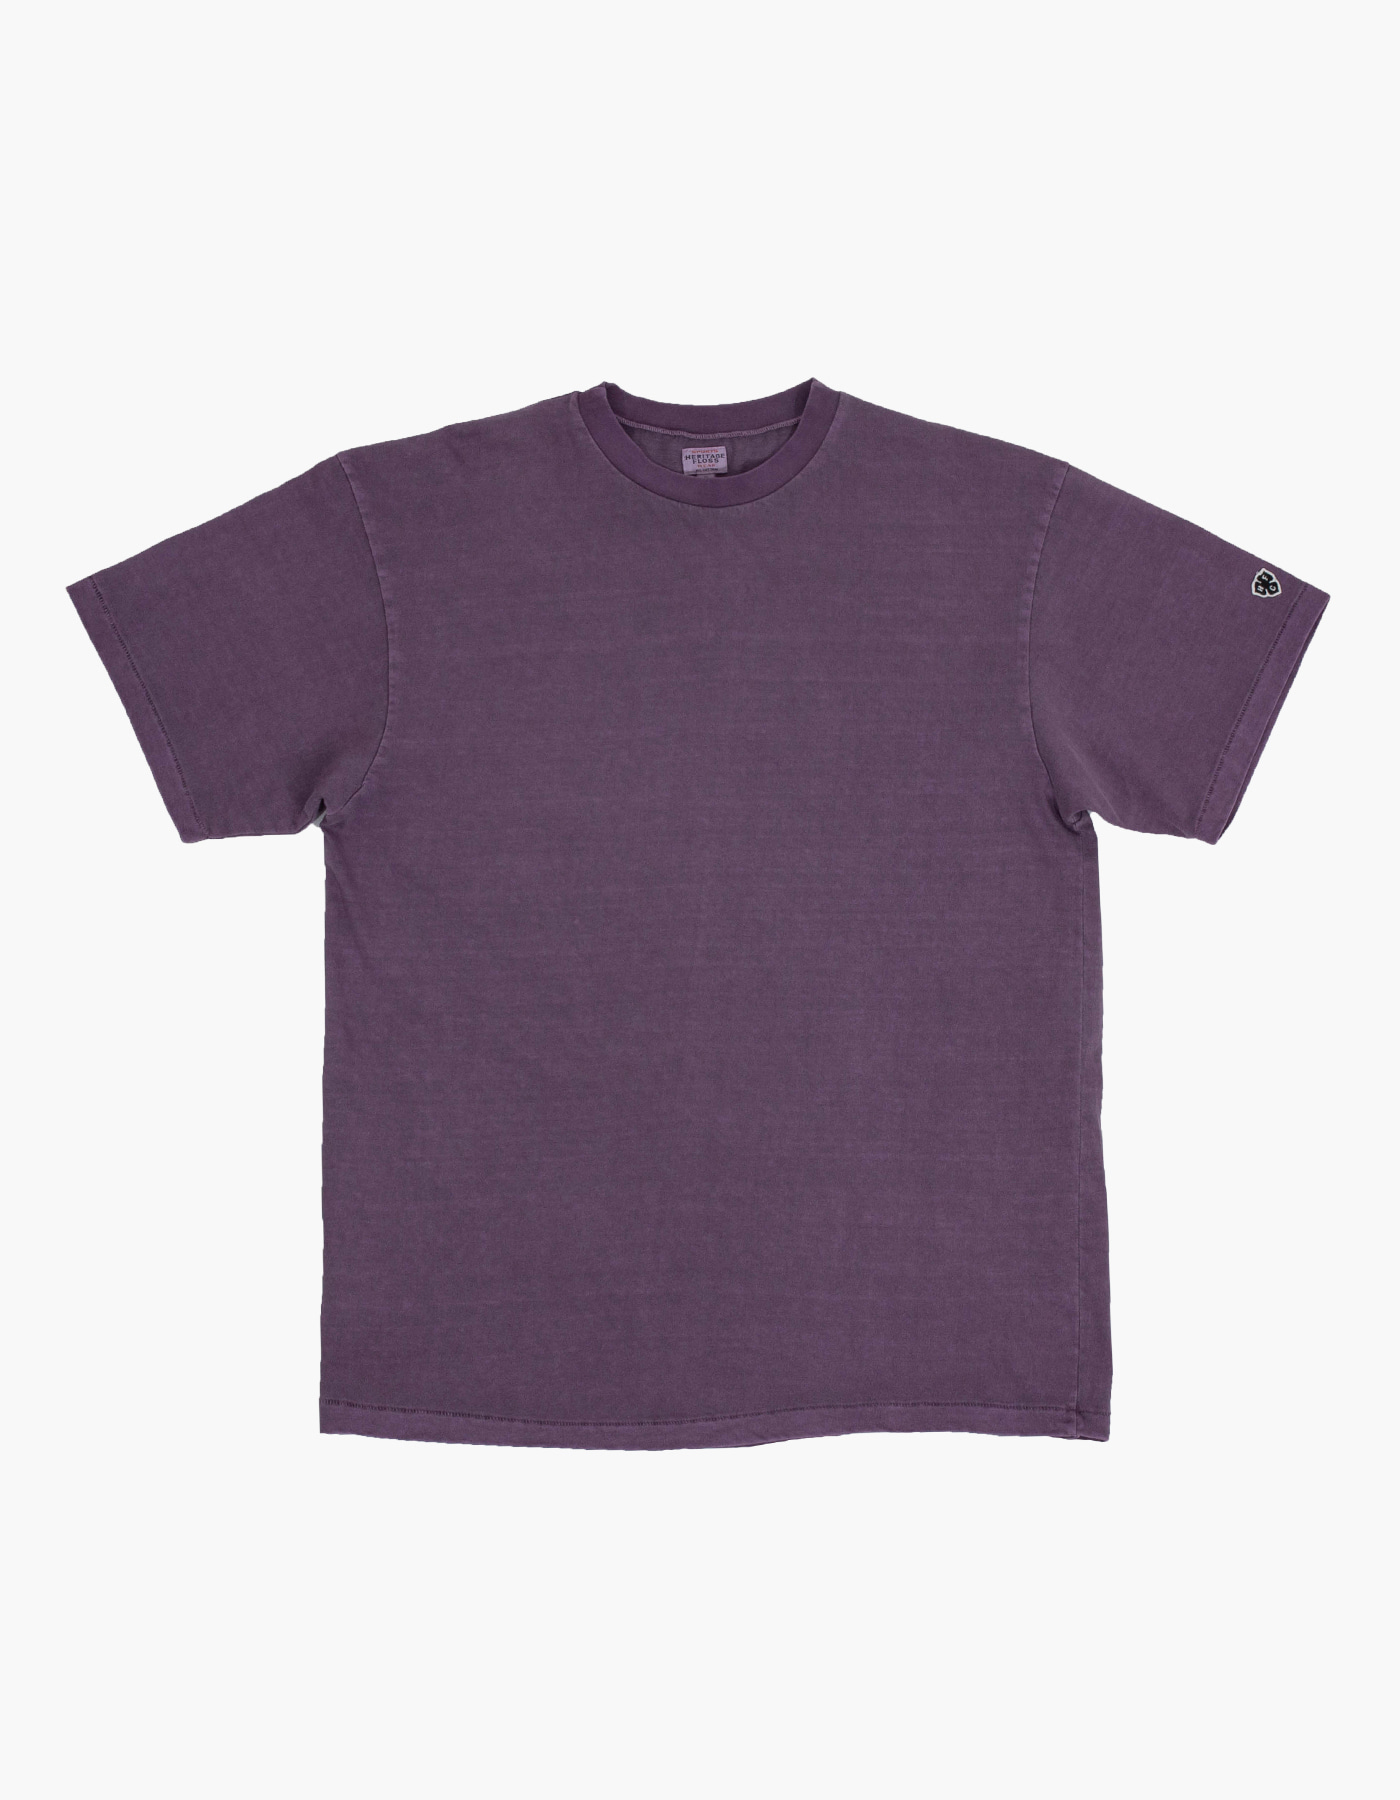 PIGMENT COMPACT YARN T-SHIRTS / PURPLE